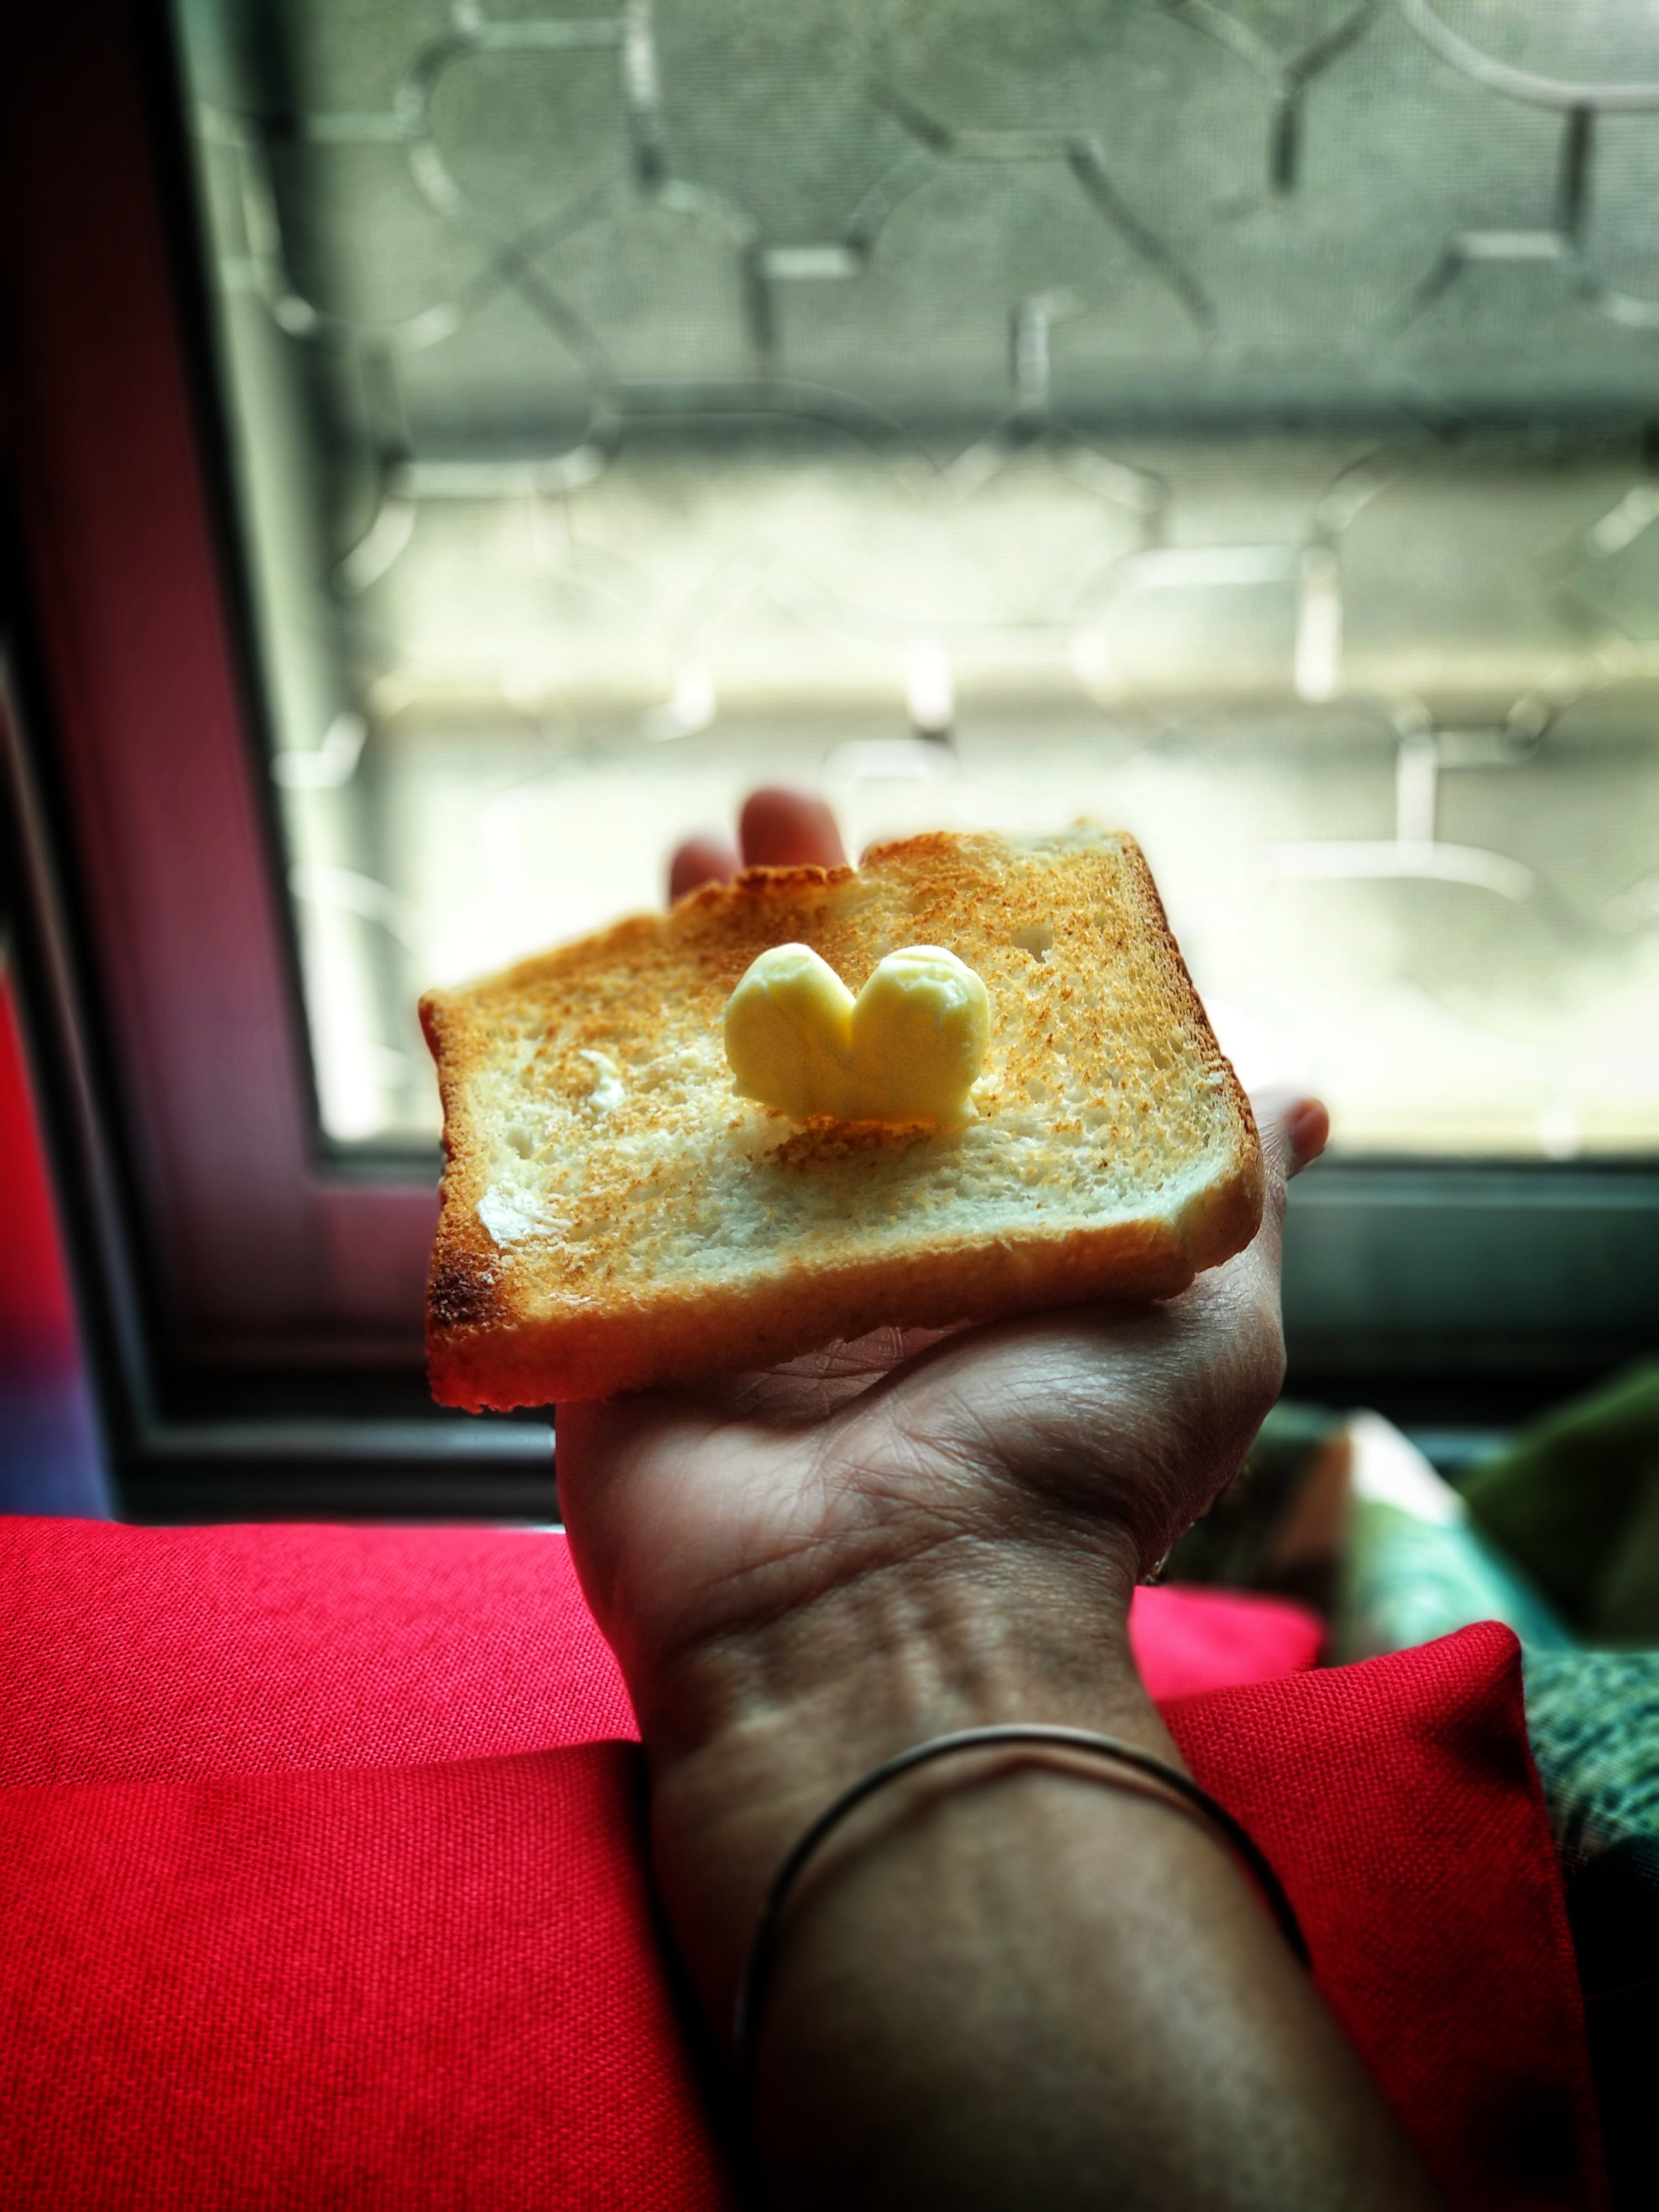 Person Holding Toast With Butter on Top